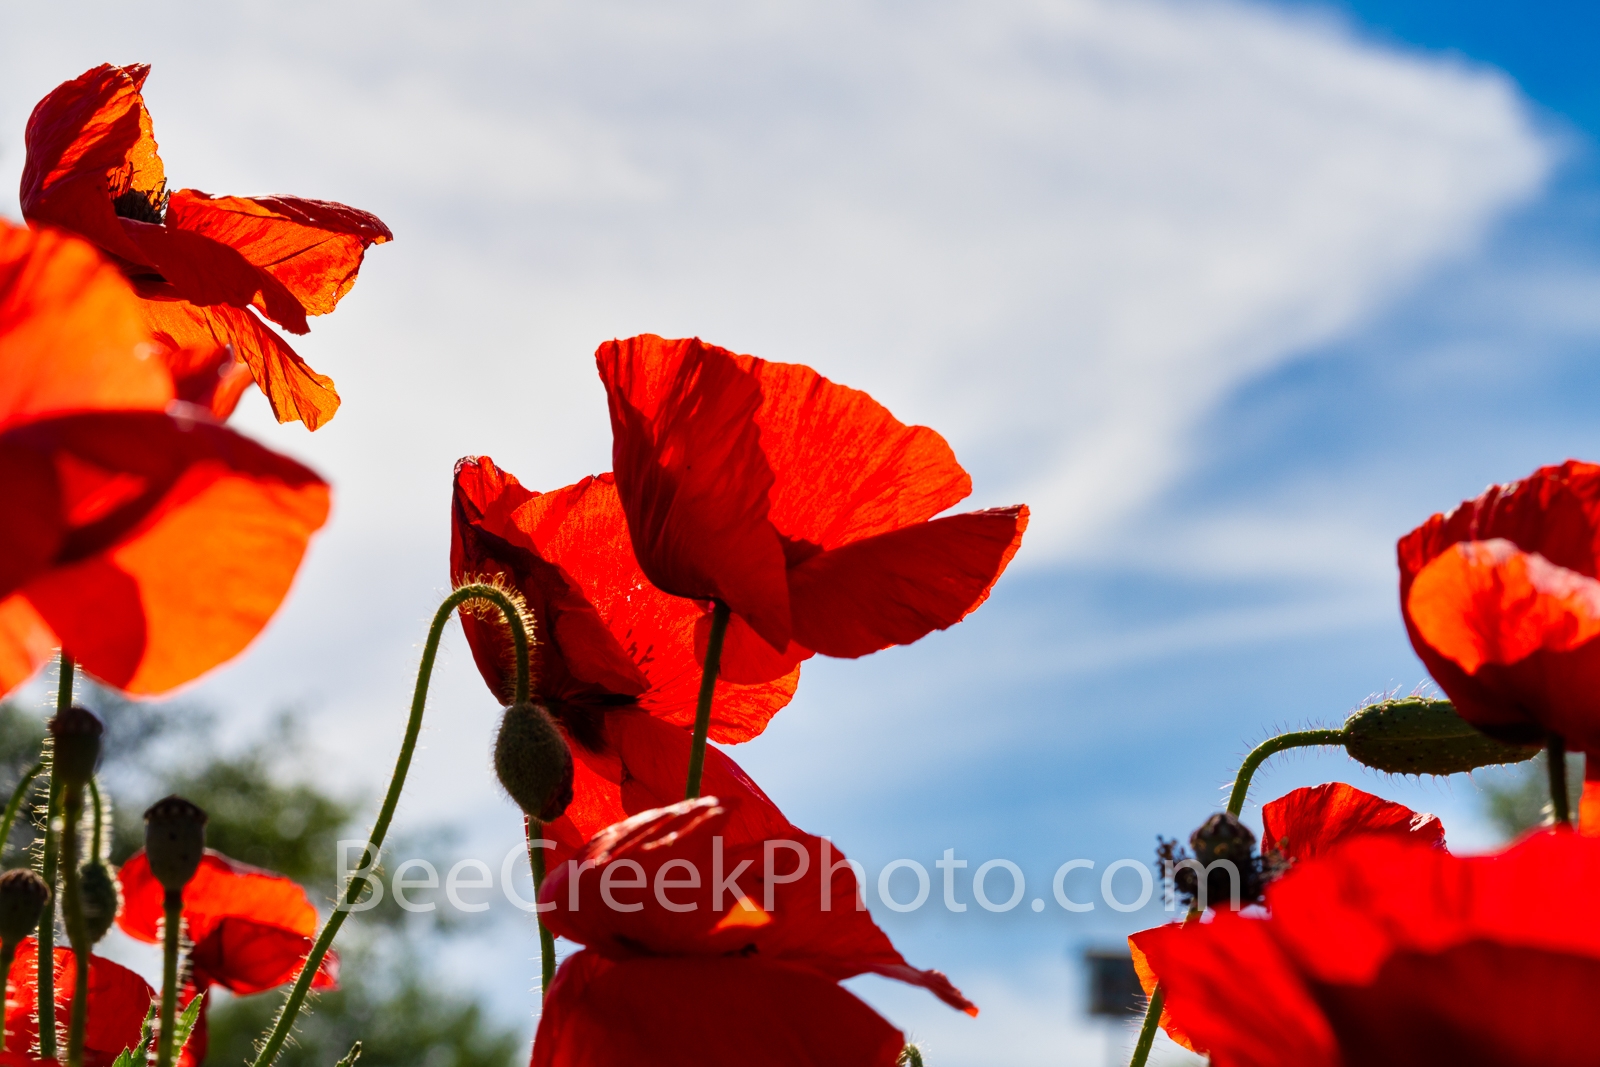 Red Corn Poppies Blowin in the Wind -We capture these red corn poppies as the wind was whipping them around from a low angle...